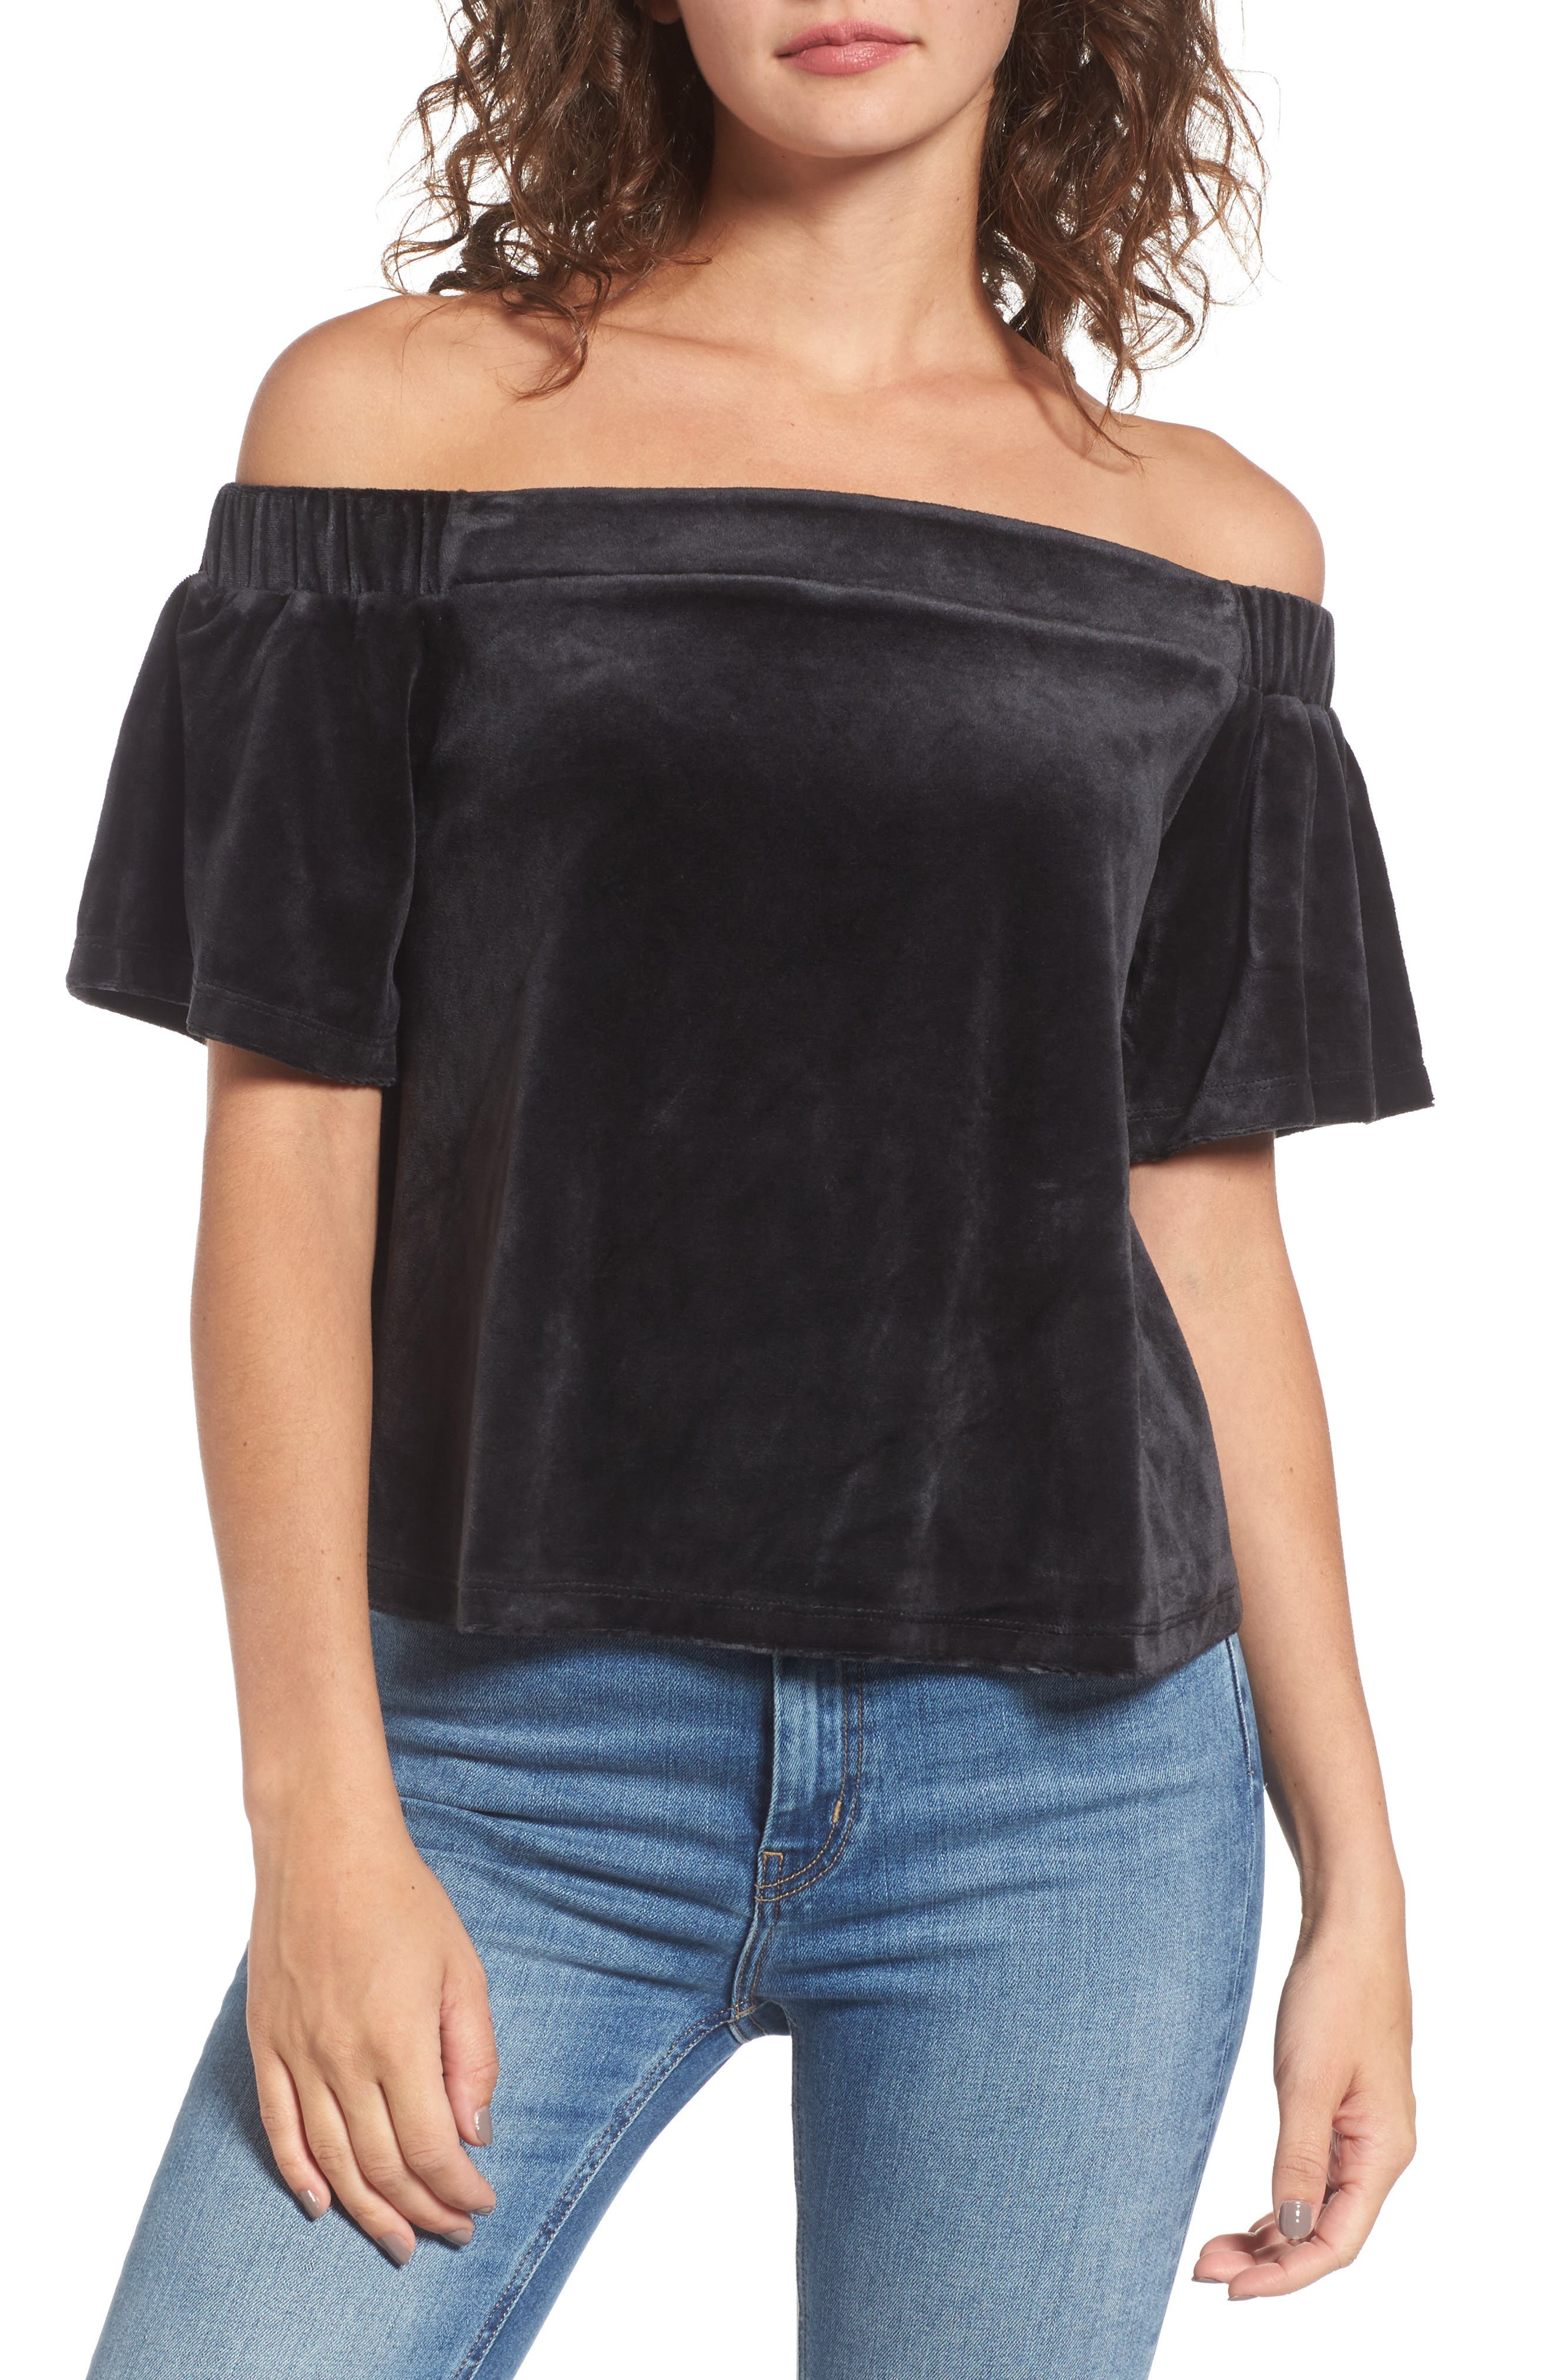 Alternate Image 1 Selected - Juicy Couture Velour Off the Shoulder Top